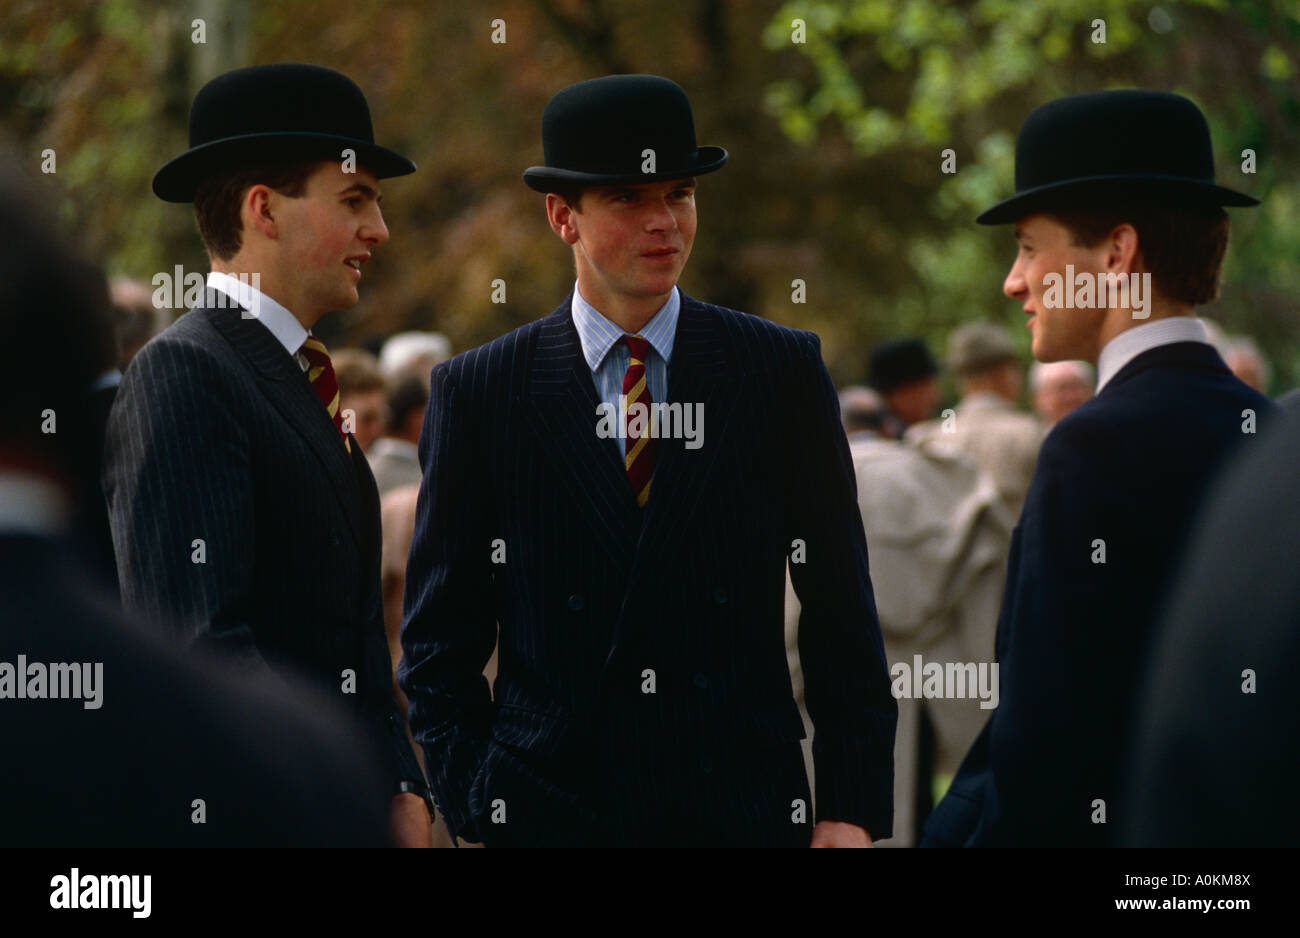 705f2f5861f Bowler Hat London Stock Photos   Bowler Hat London Stock Images - Alamy